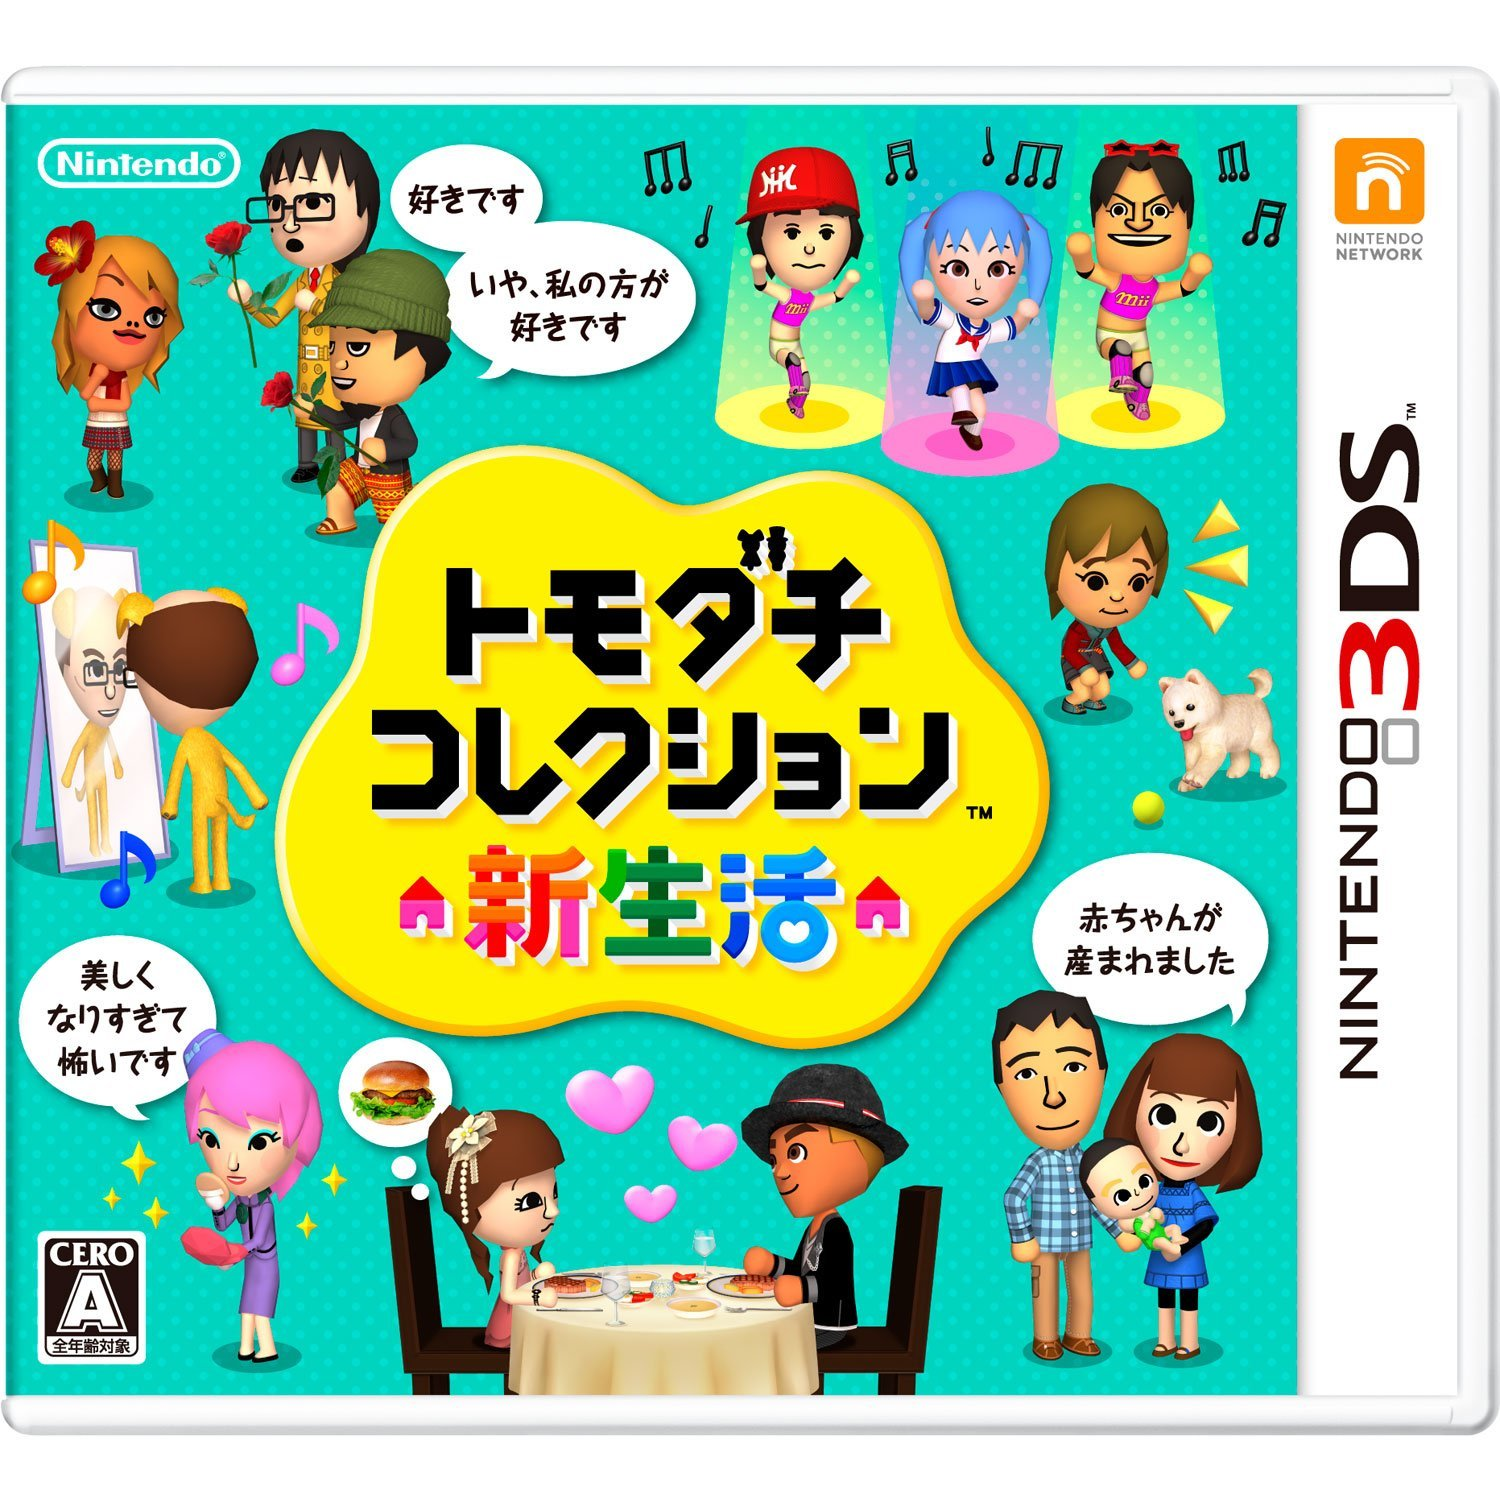 Tomodachi Collection: New Life Coming April 18 For